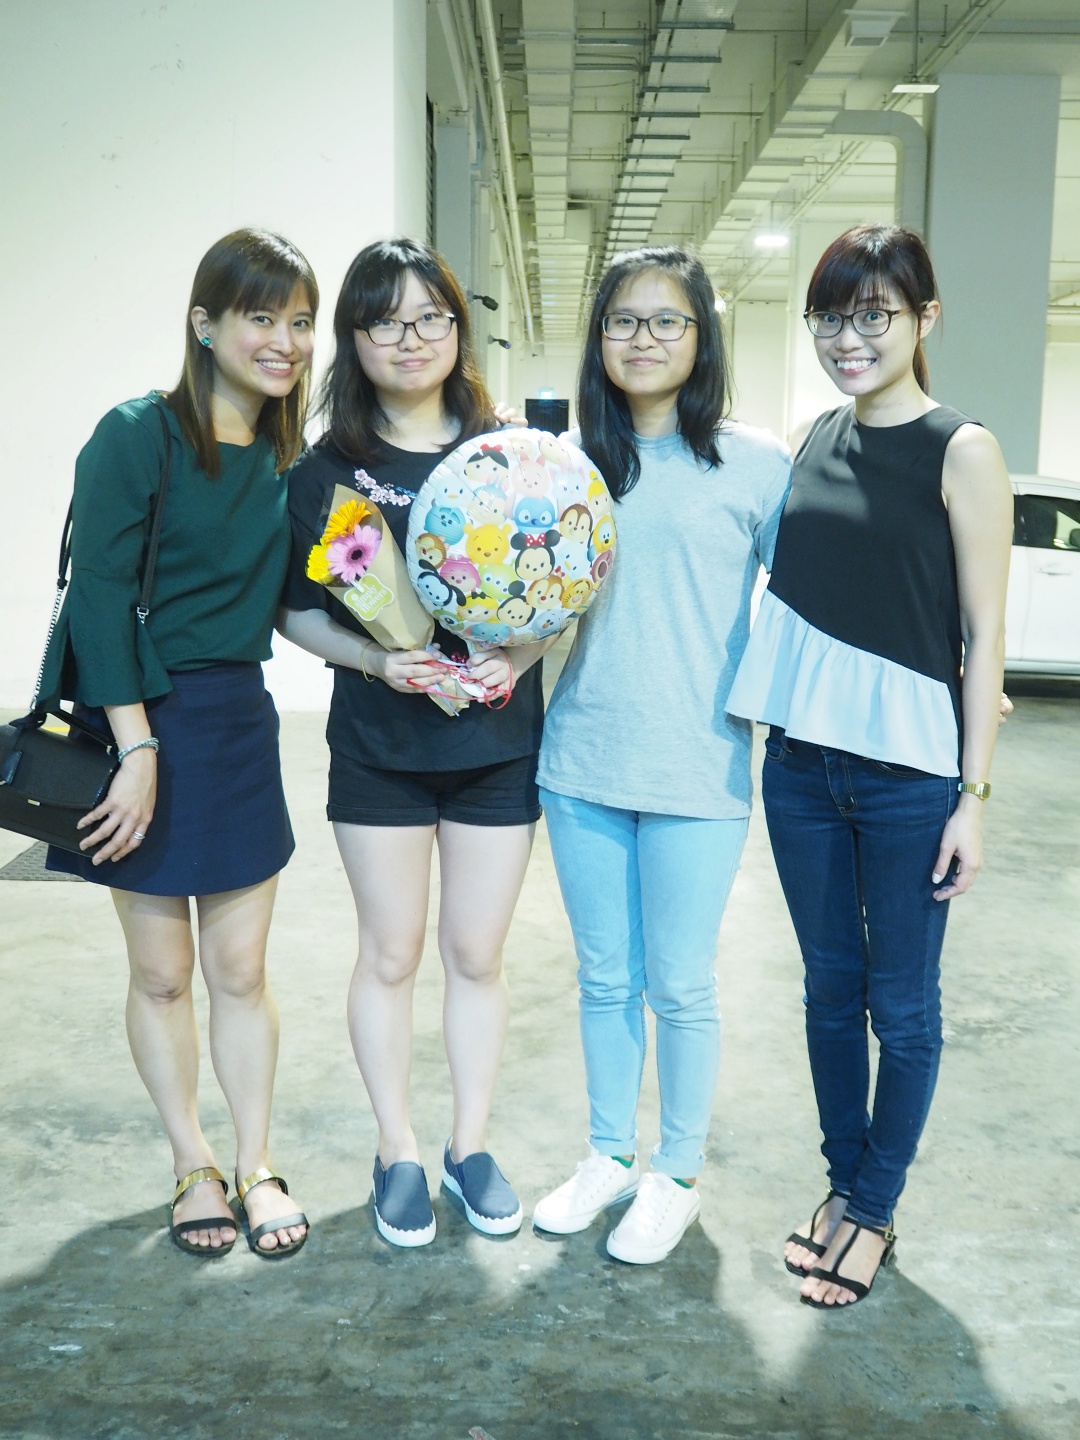 Jing Yi's 20th Birthday | joanne-khoo.com